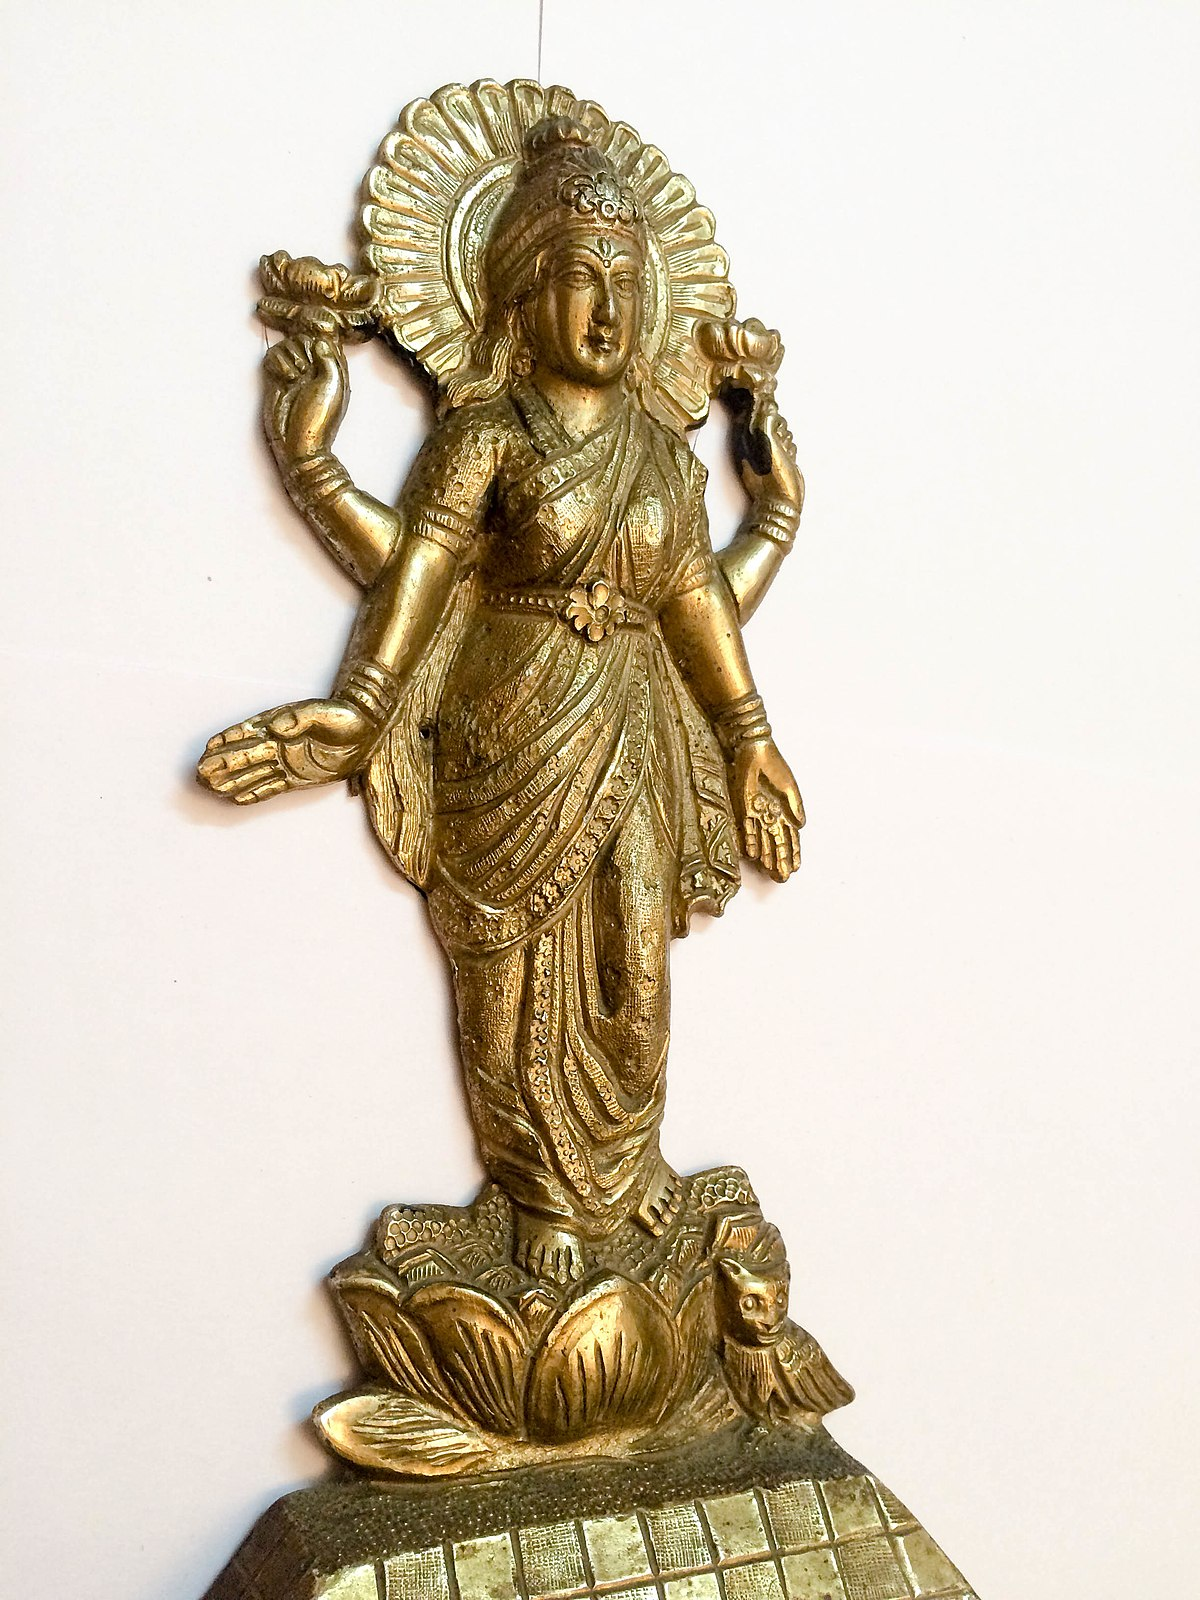 File Goddess Lakshmi Is The Hindu Goddess Of Wealth And Prosperity With An Owl As Her Animal Ride Or Vahana Jpg Wikimedia Commons